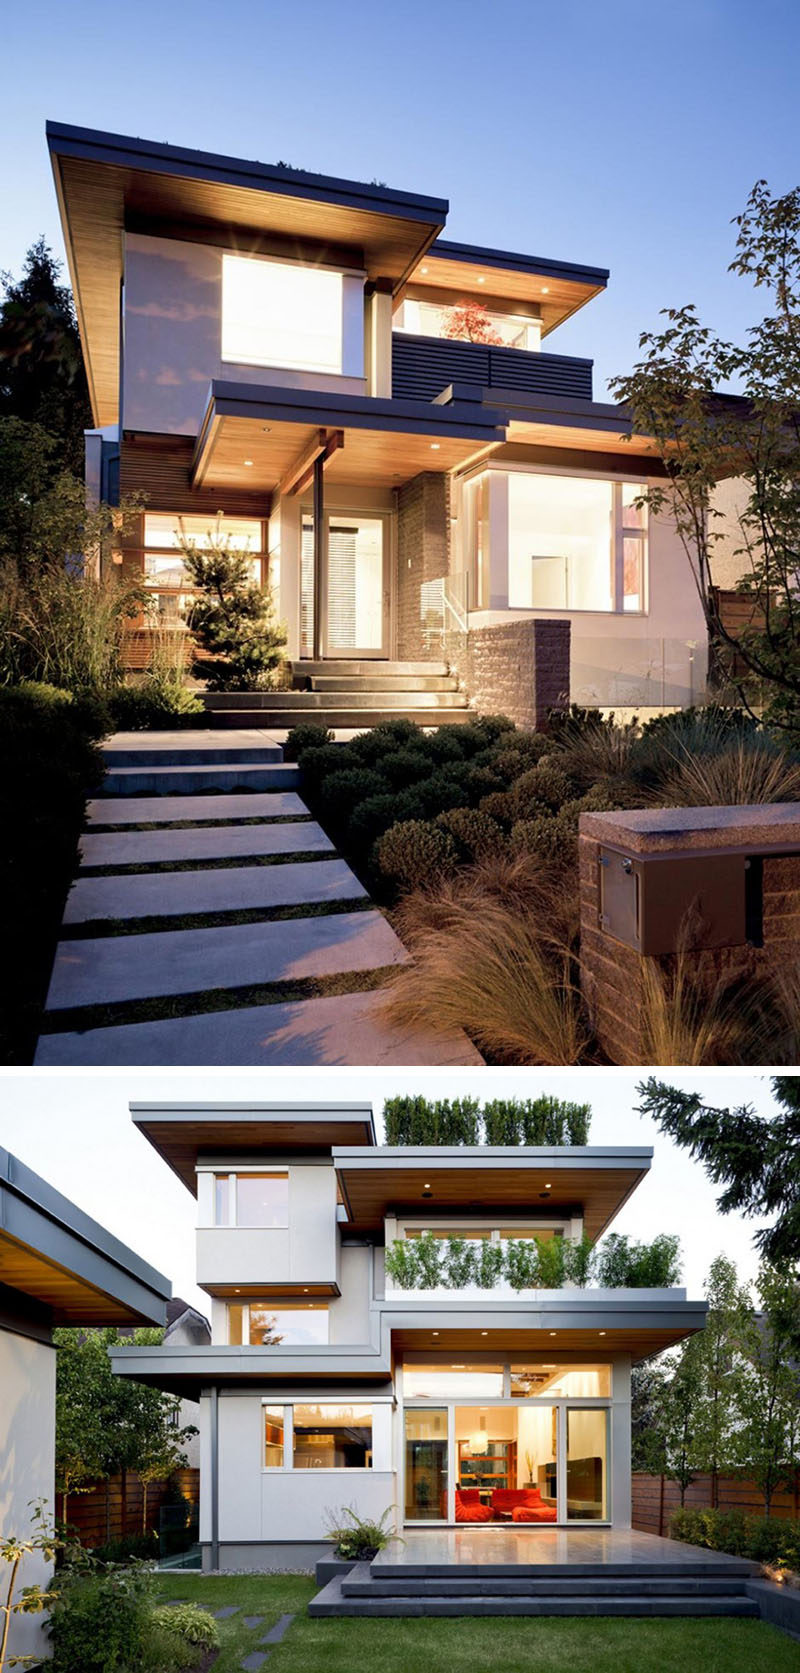 20 awesome examples of pacific northwest architecture for Pacific image home designs ltd